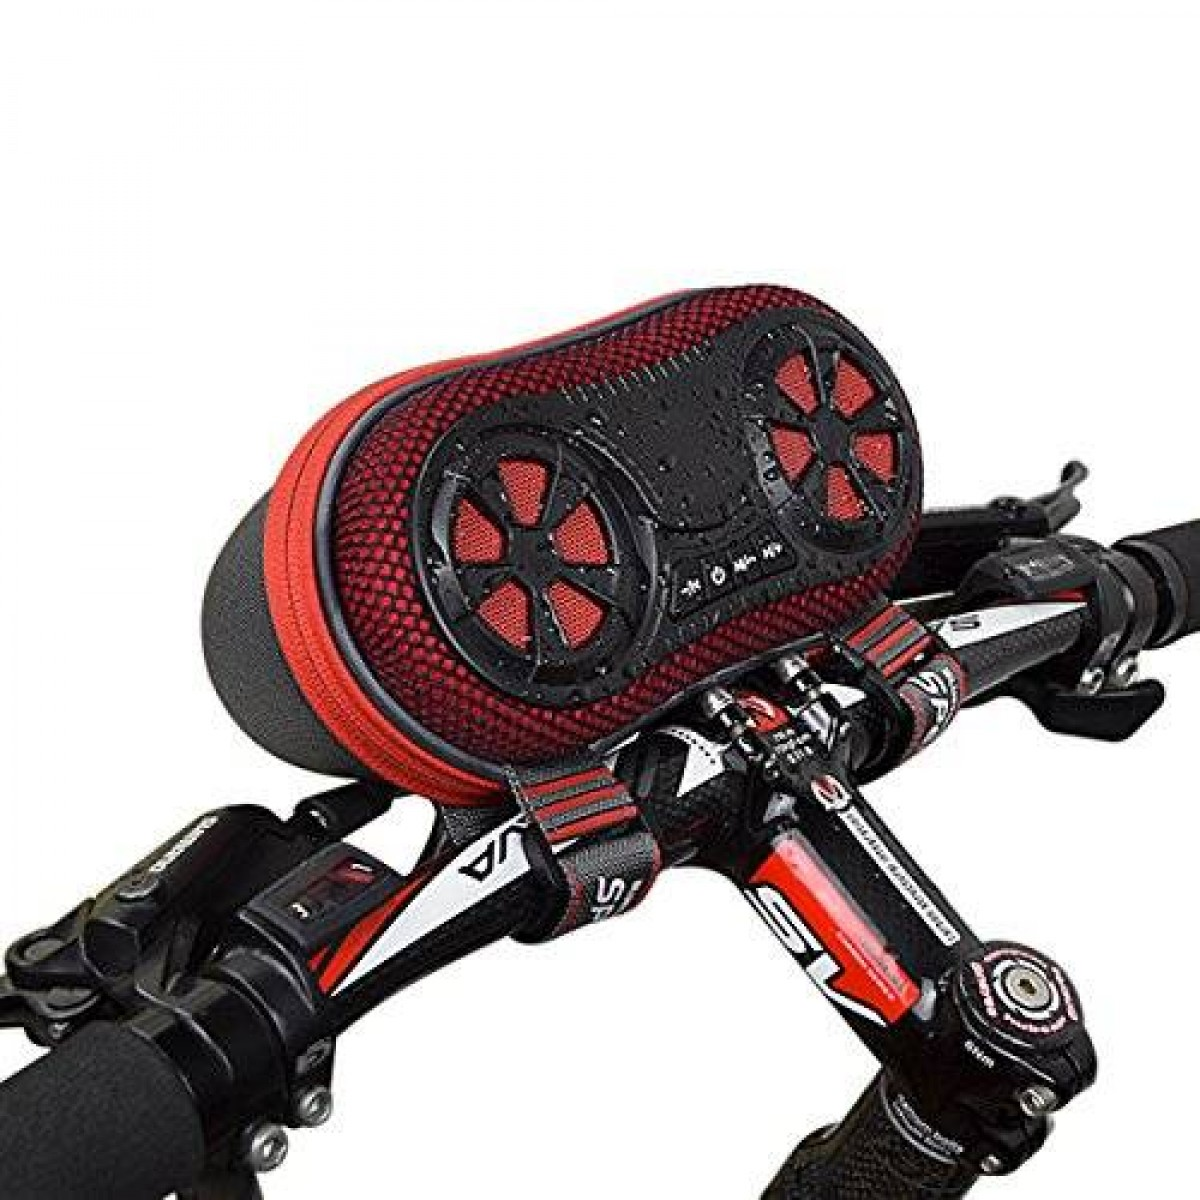 ECEEN Wireless Bluetooth Speaker Bicycle Speaker Case with Hands Free Speakerphone Calls and Rechargeable 4